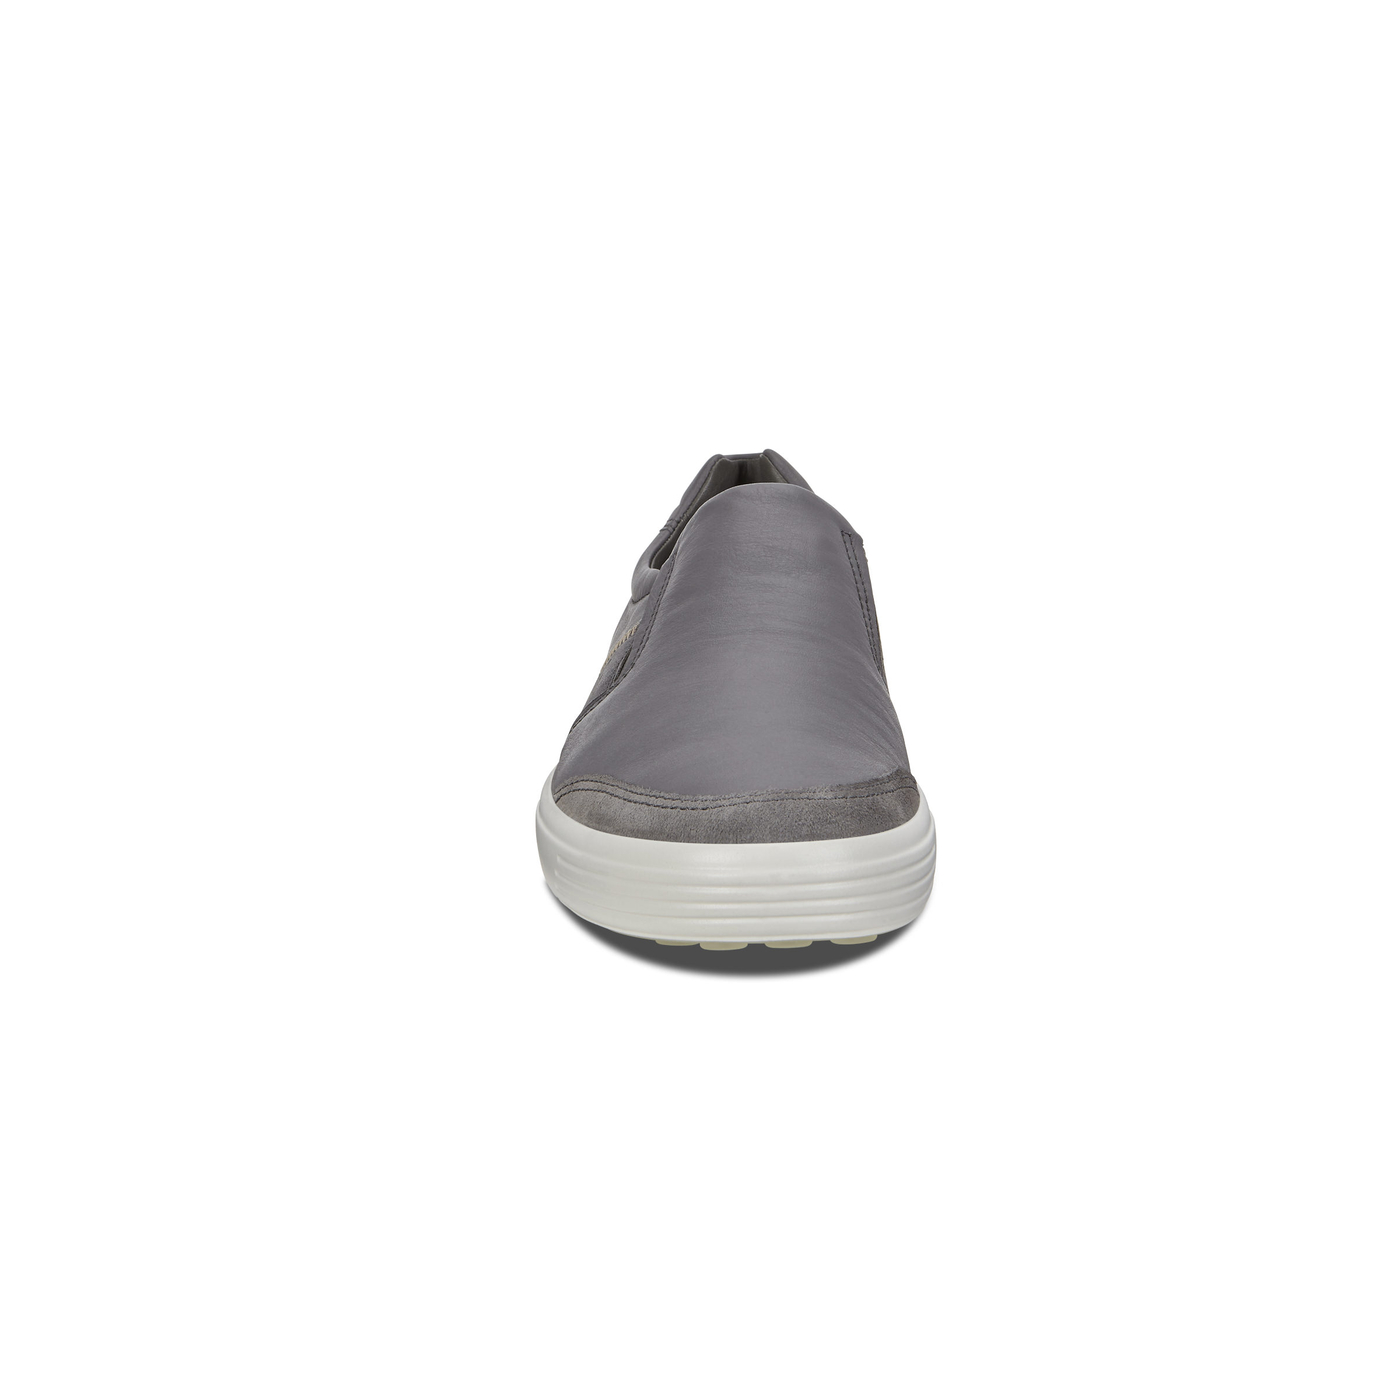 ECCO SOFT 7 MEN'S Slip-on